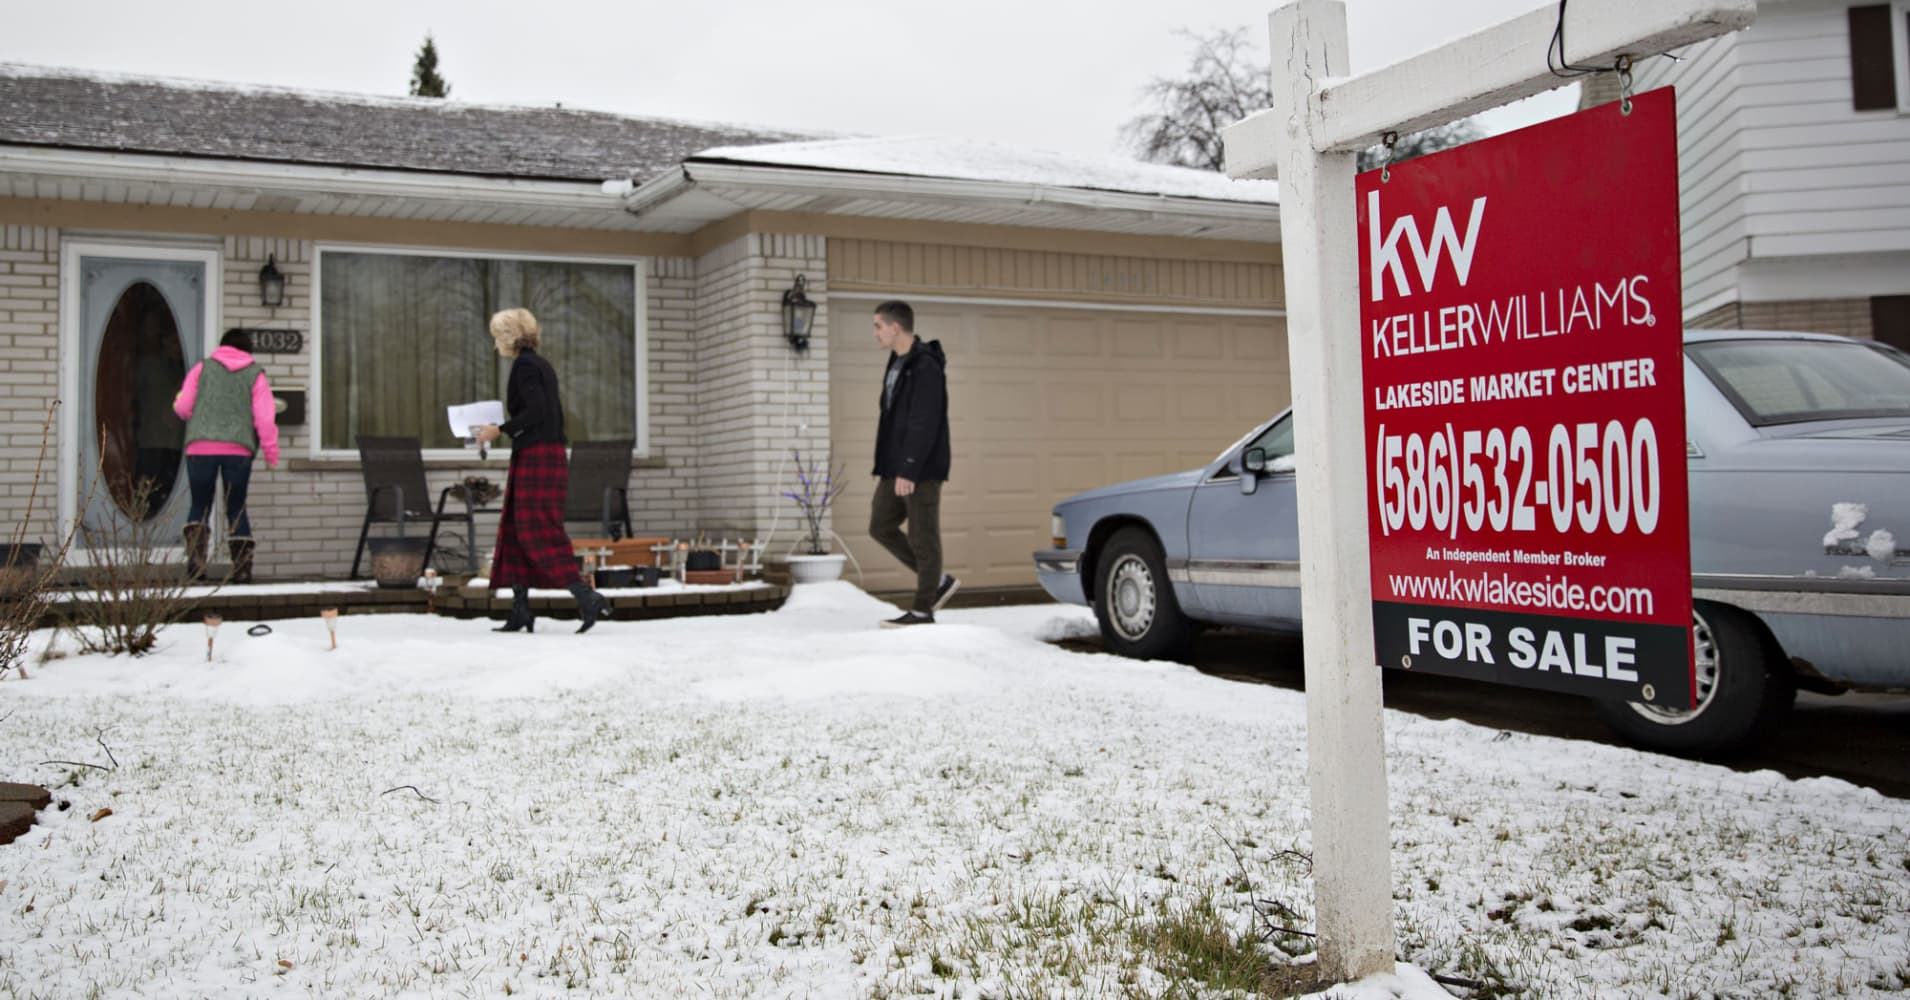 The unusually large drop in home sales has real estate agents baffled - CNBC thumbnail